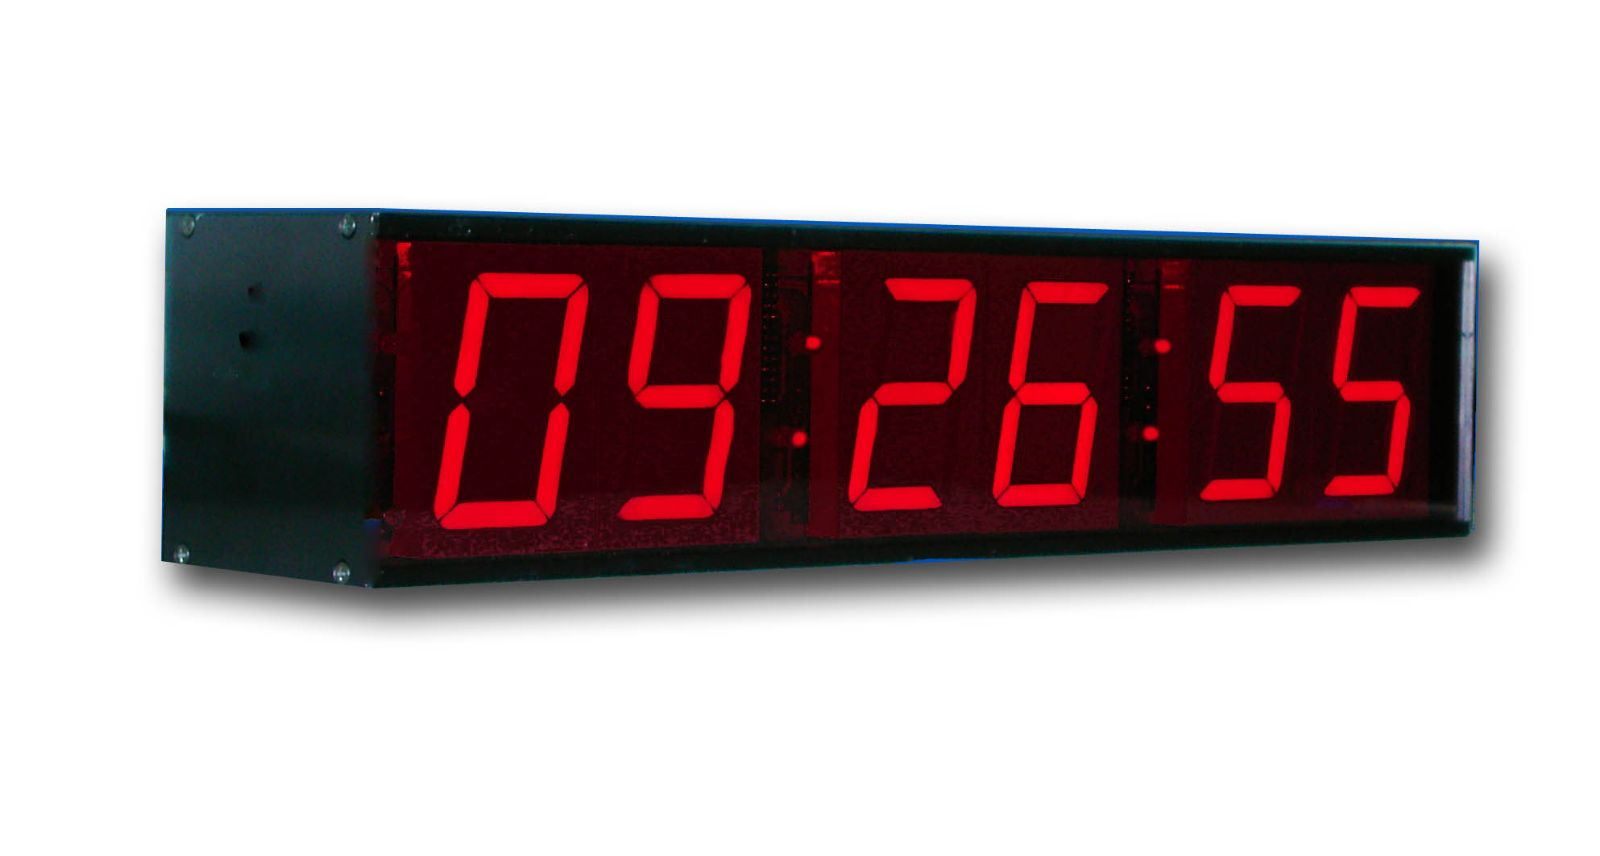 m355 led time display